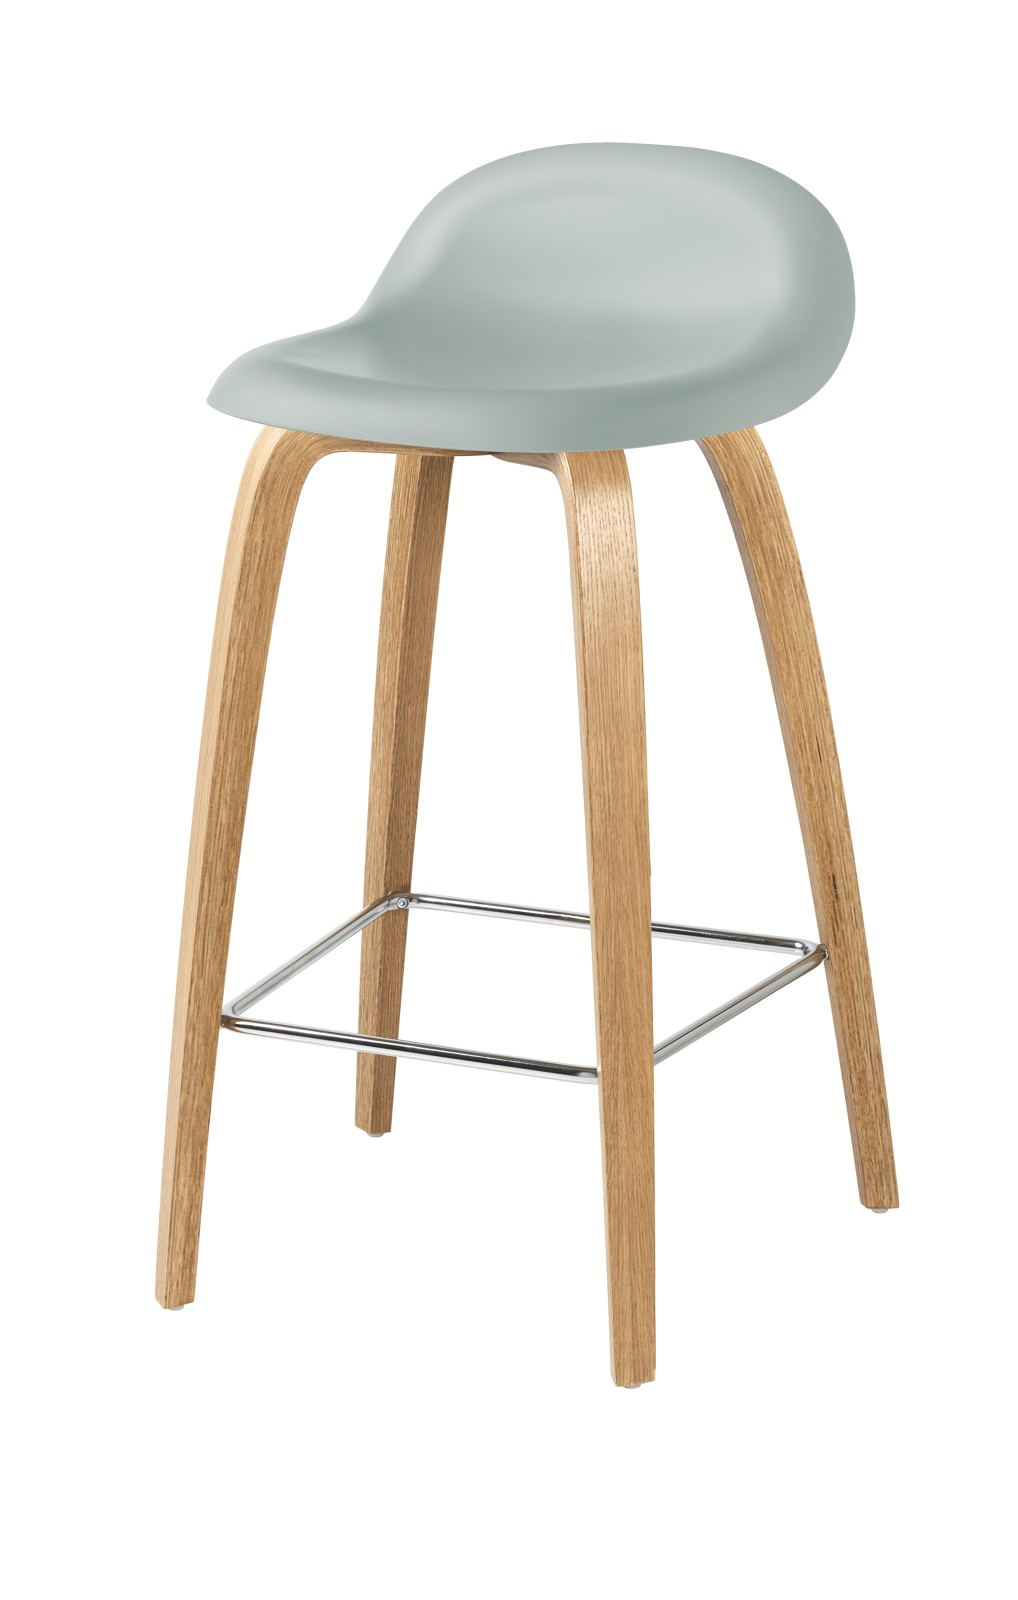 Gubi 3D Wood Base Counter Stool - Unupholstered Gubi HiRek Nightfall Blue, Gubi Wood Oak